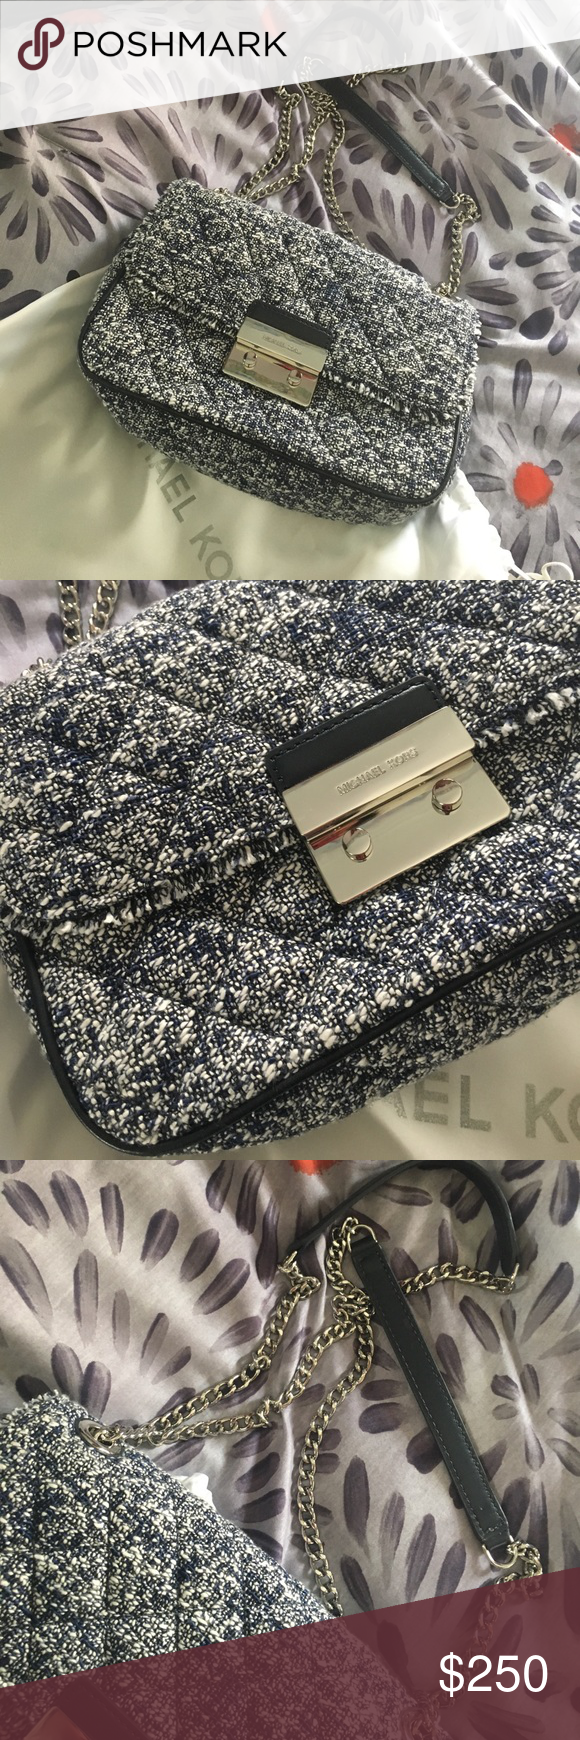 12f83629220b91 Michael Kors Tweed Bag 10x7, silver hardware navy leather nwt Bags  Crossbody Bags